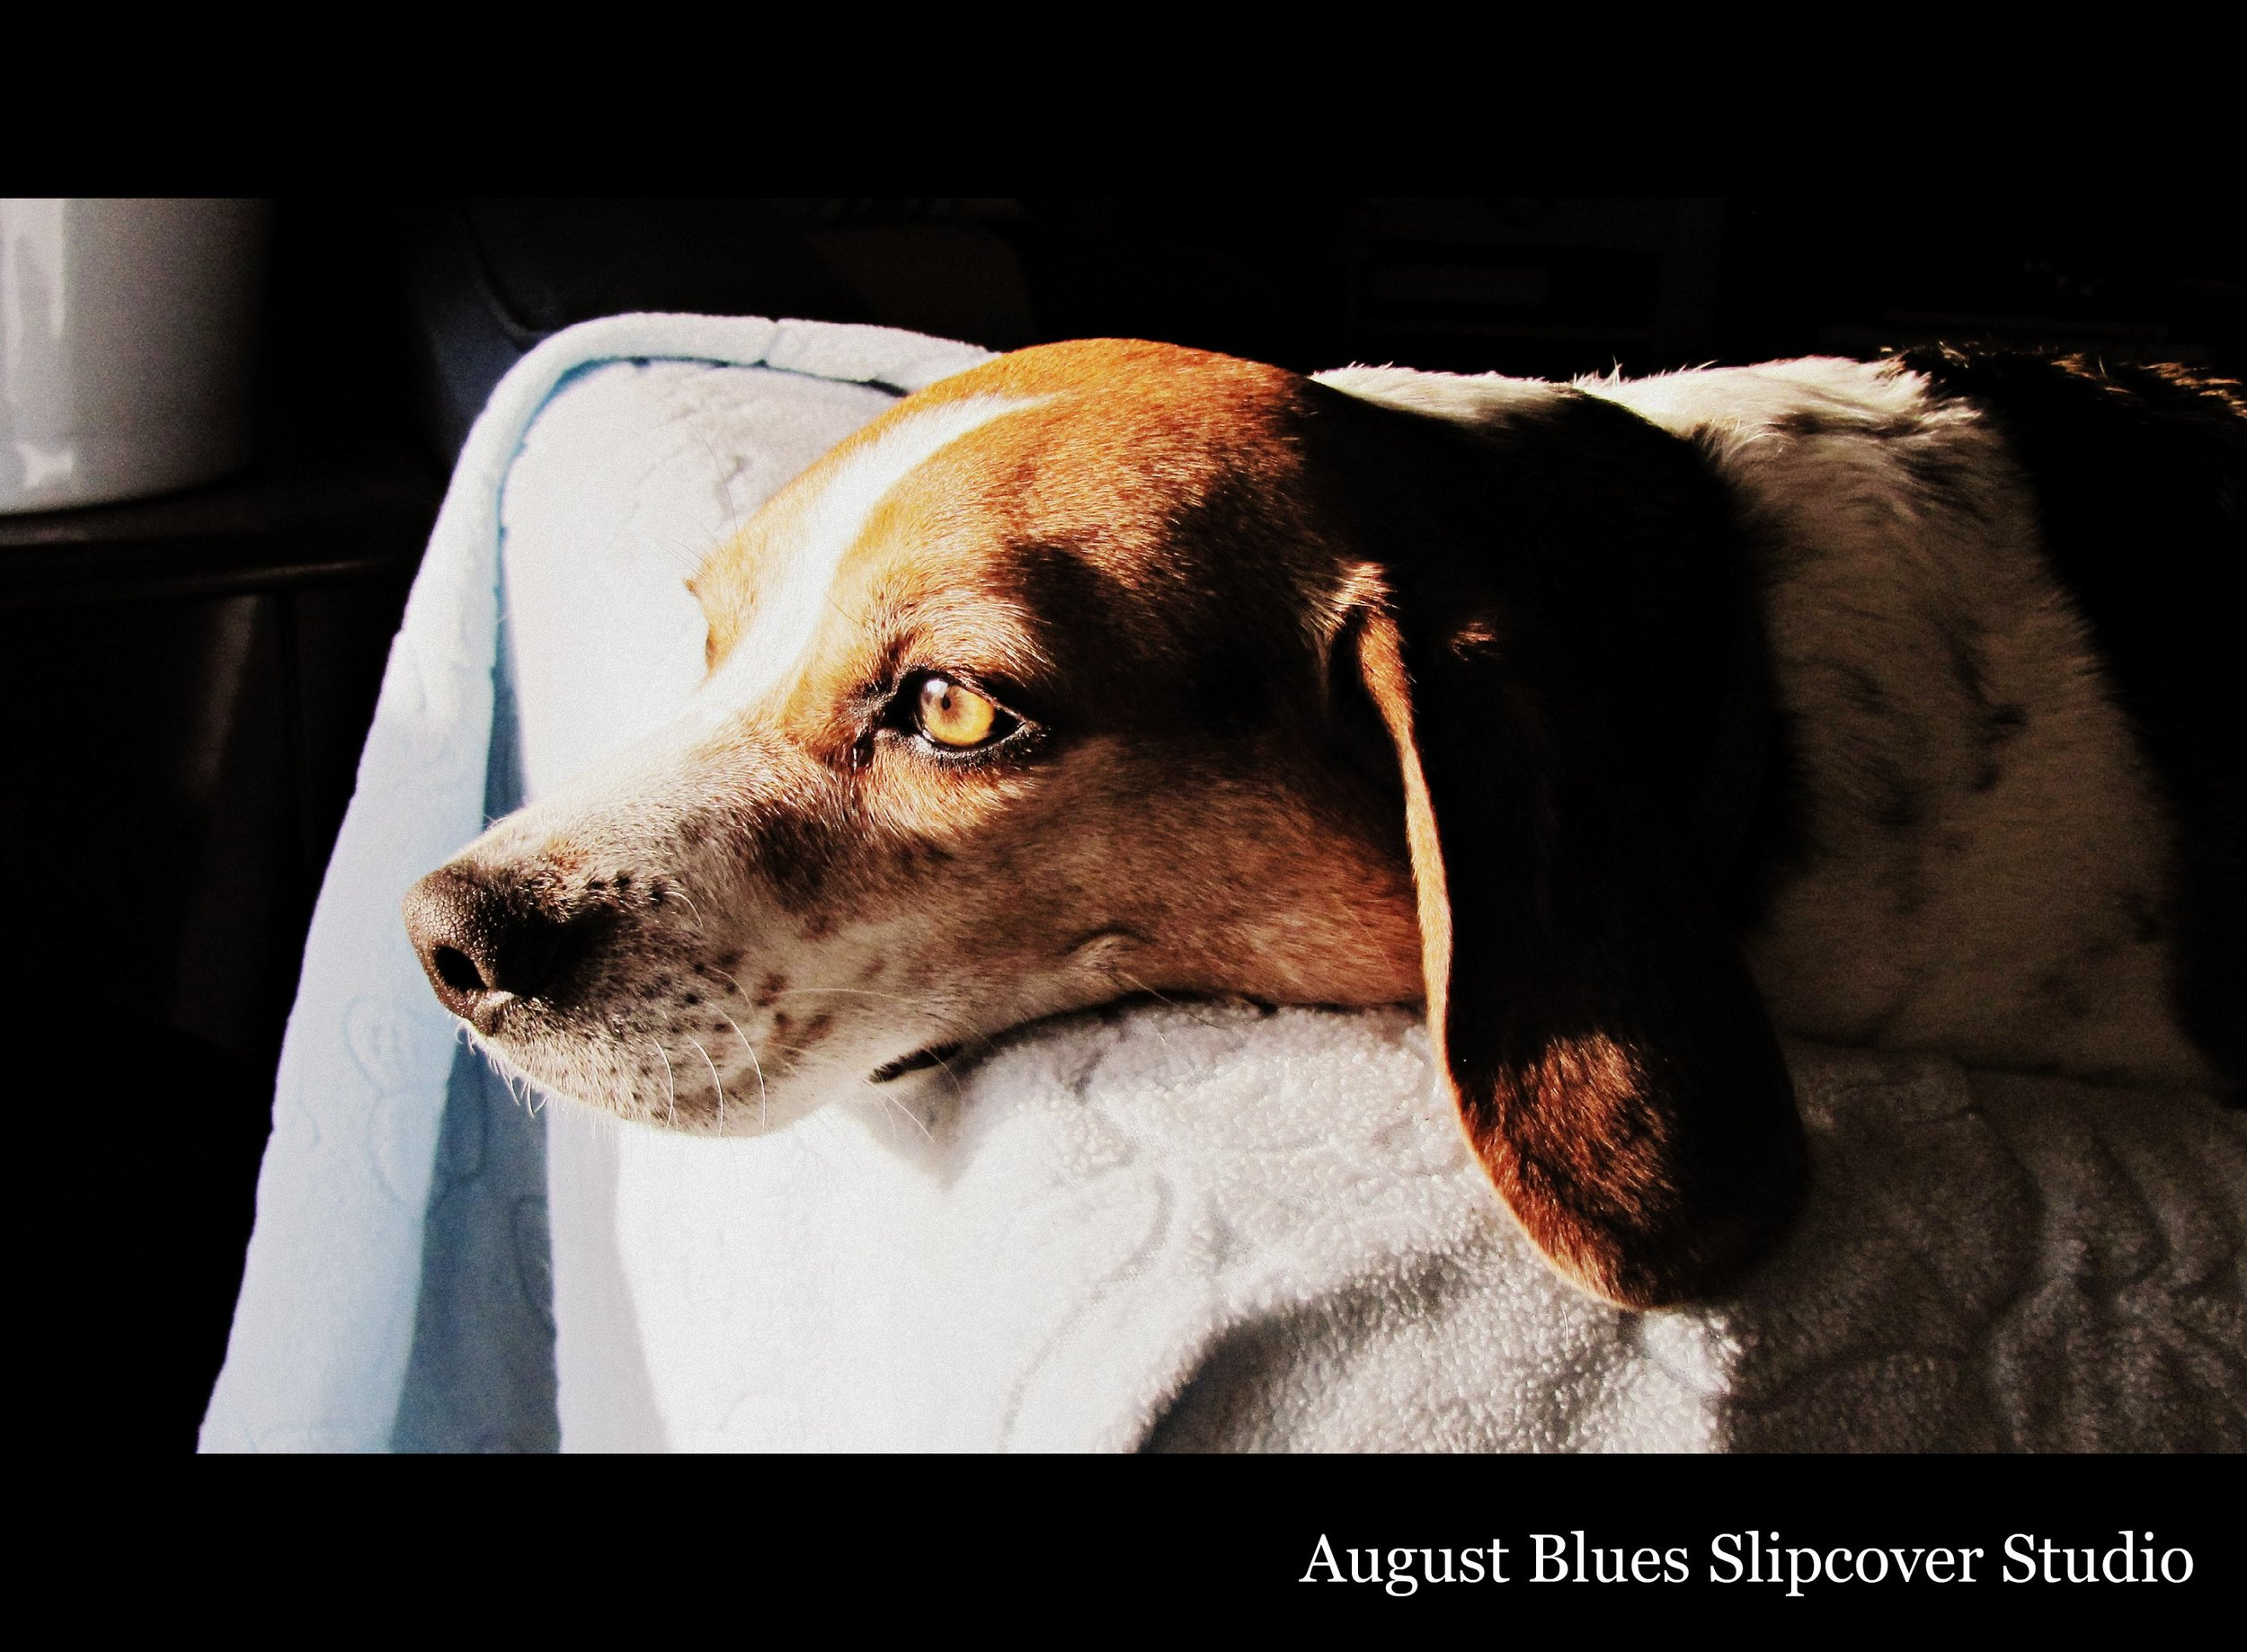 August Blues - the beagle